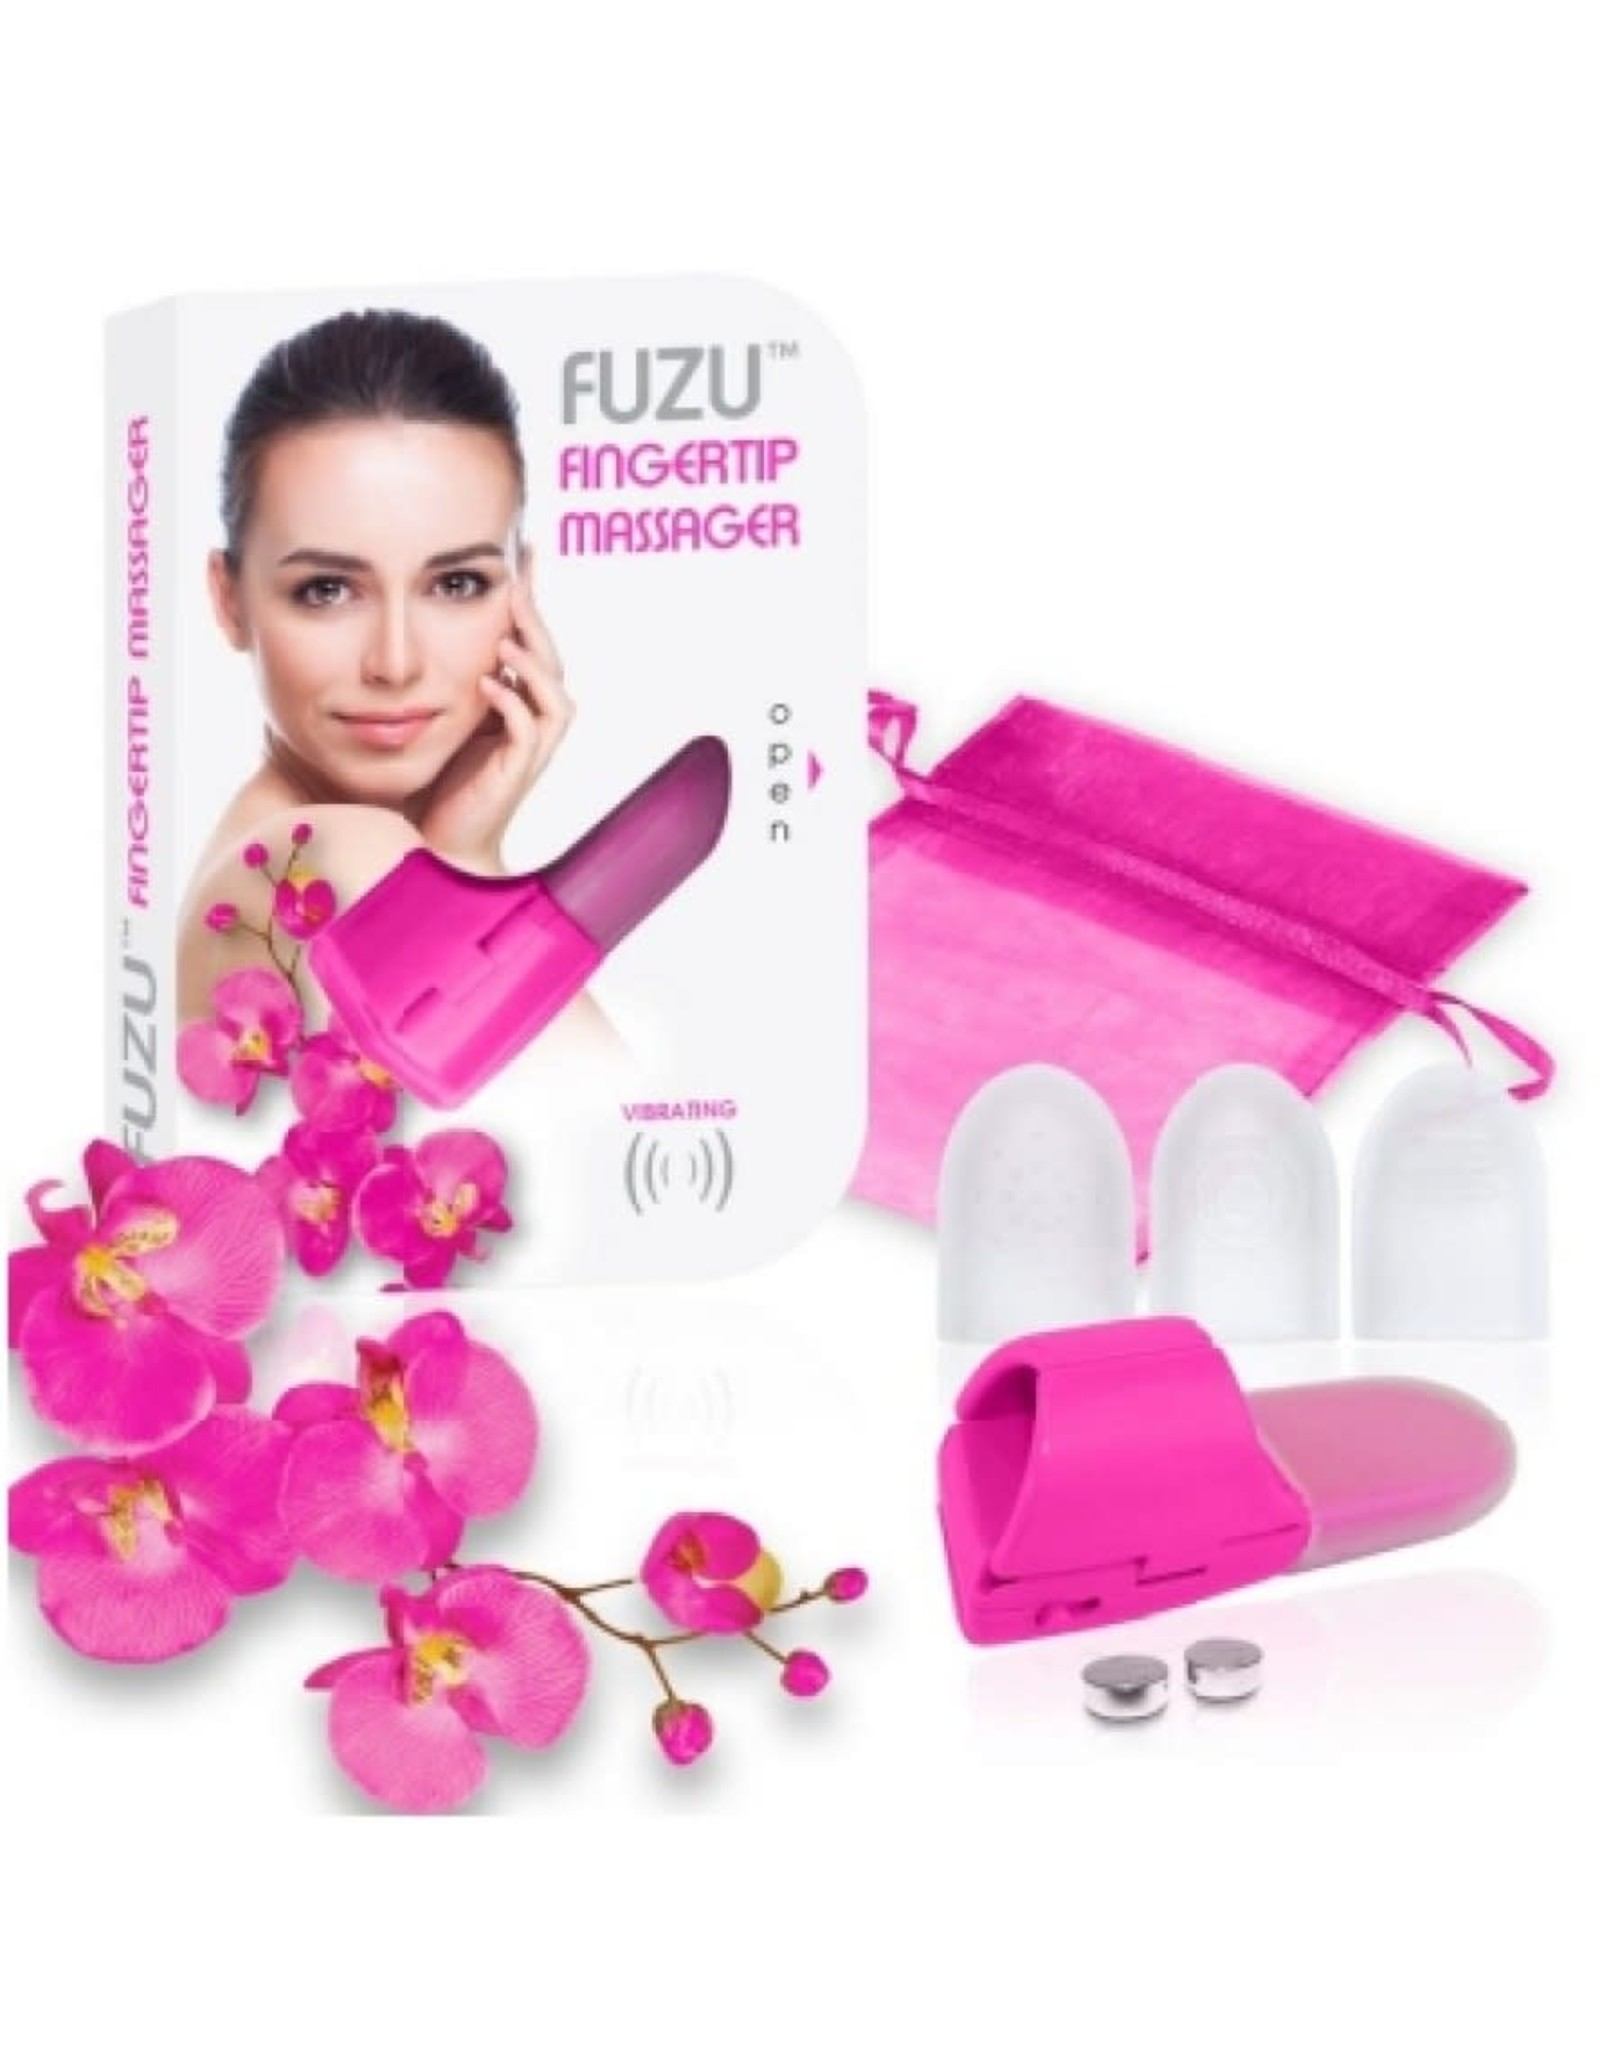 FUZU - VIBRATING FINGERTIP MASSAGER - NEON PINK